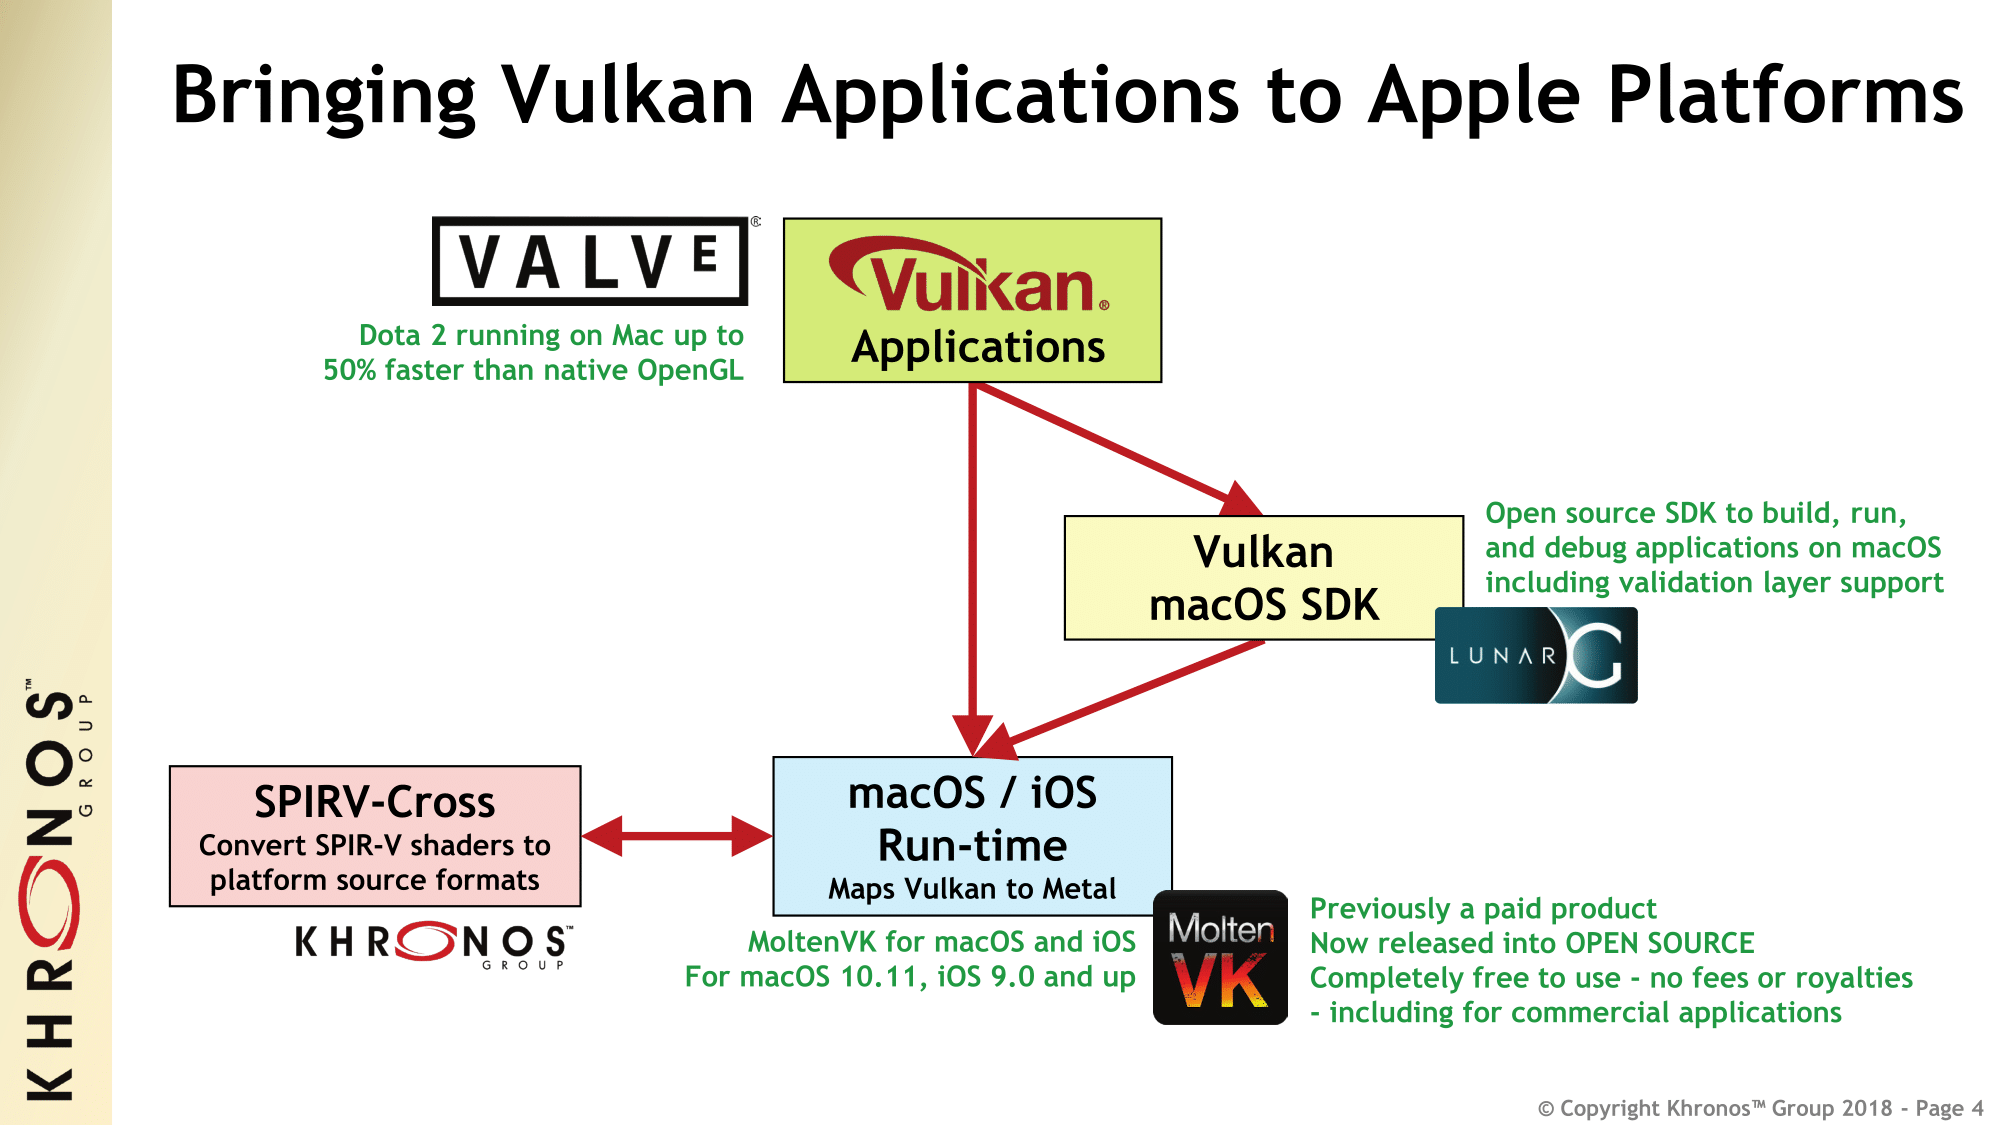 Bringing Vulkan to Apple's Platforms: Khronos Group